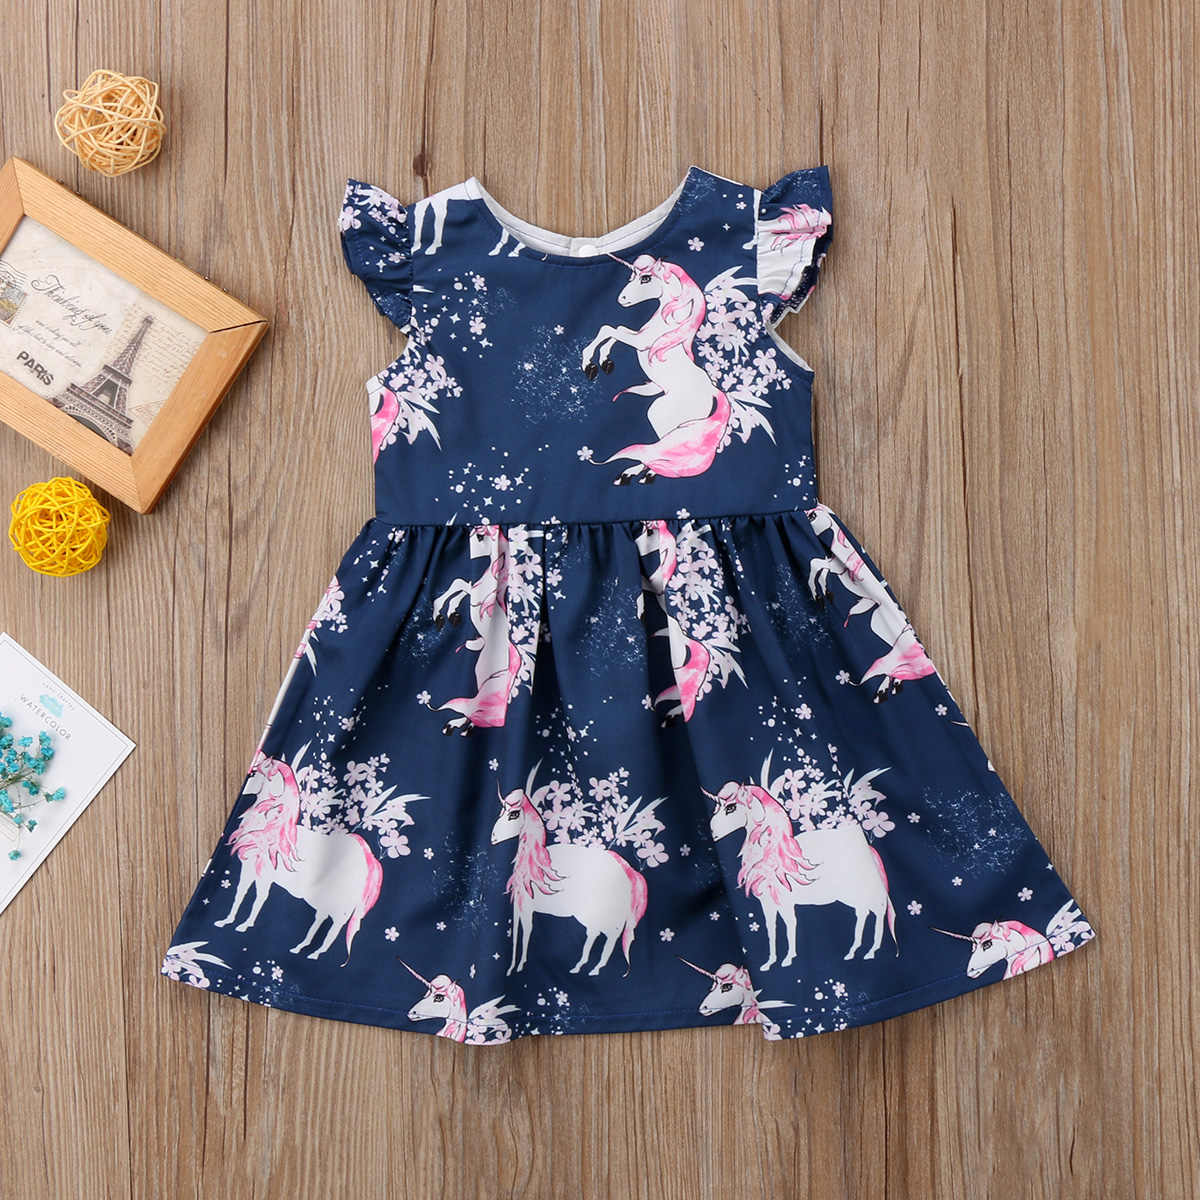 bc22f27a7b9752 ... Toddler Baby Girls Dress Round Neck Floral Outfits Unicorn Summer  Sleeveless Blue Dresses Girl Clothing Cute ...